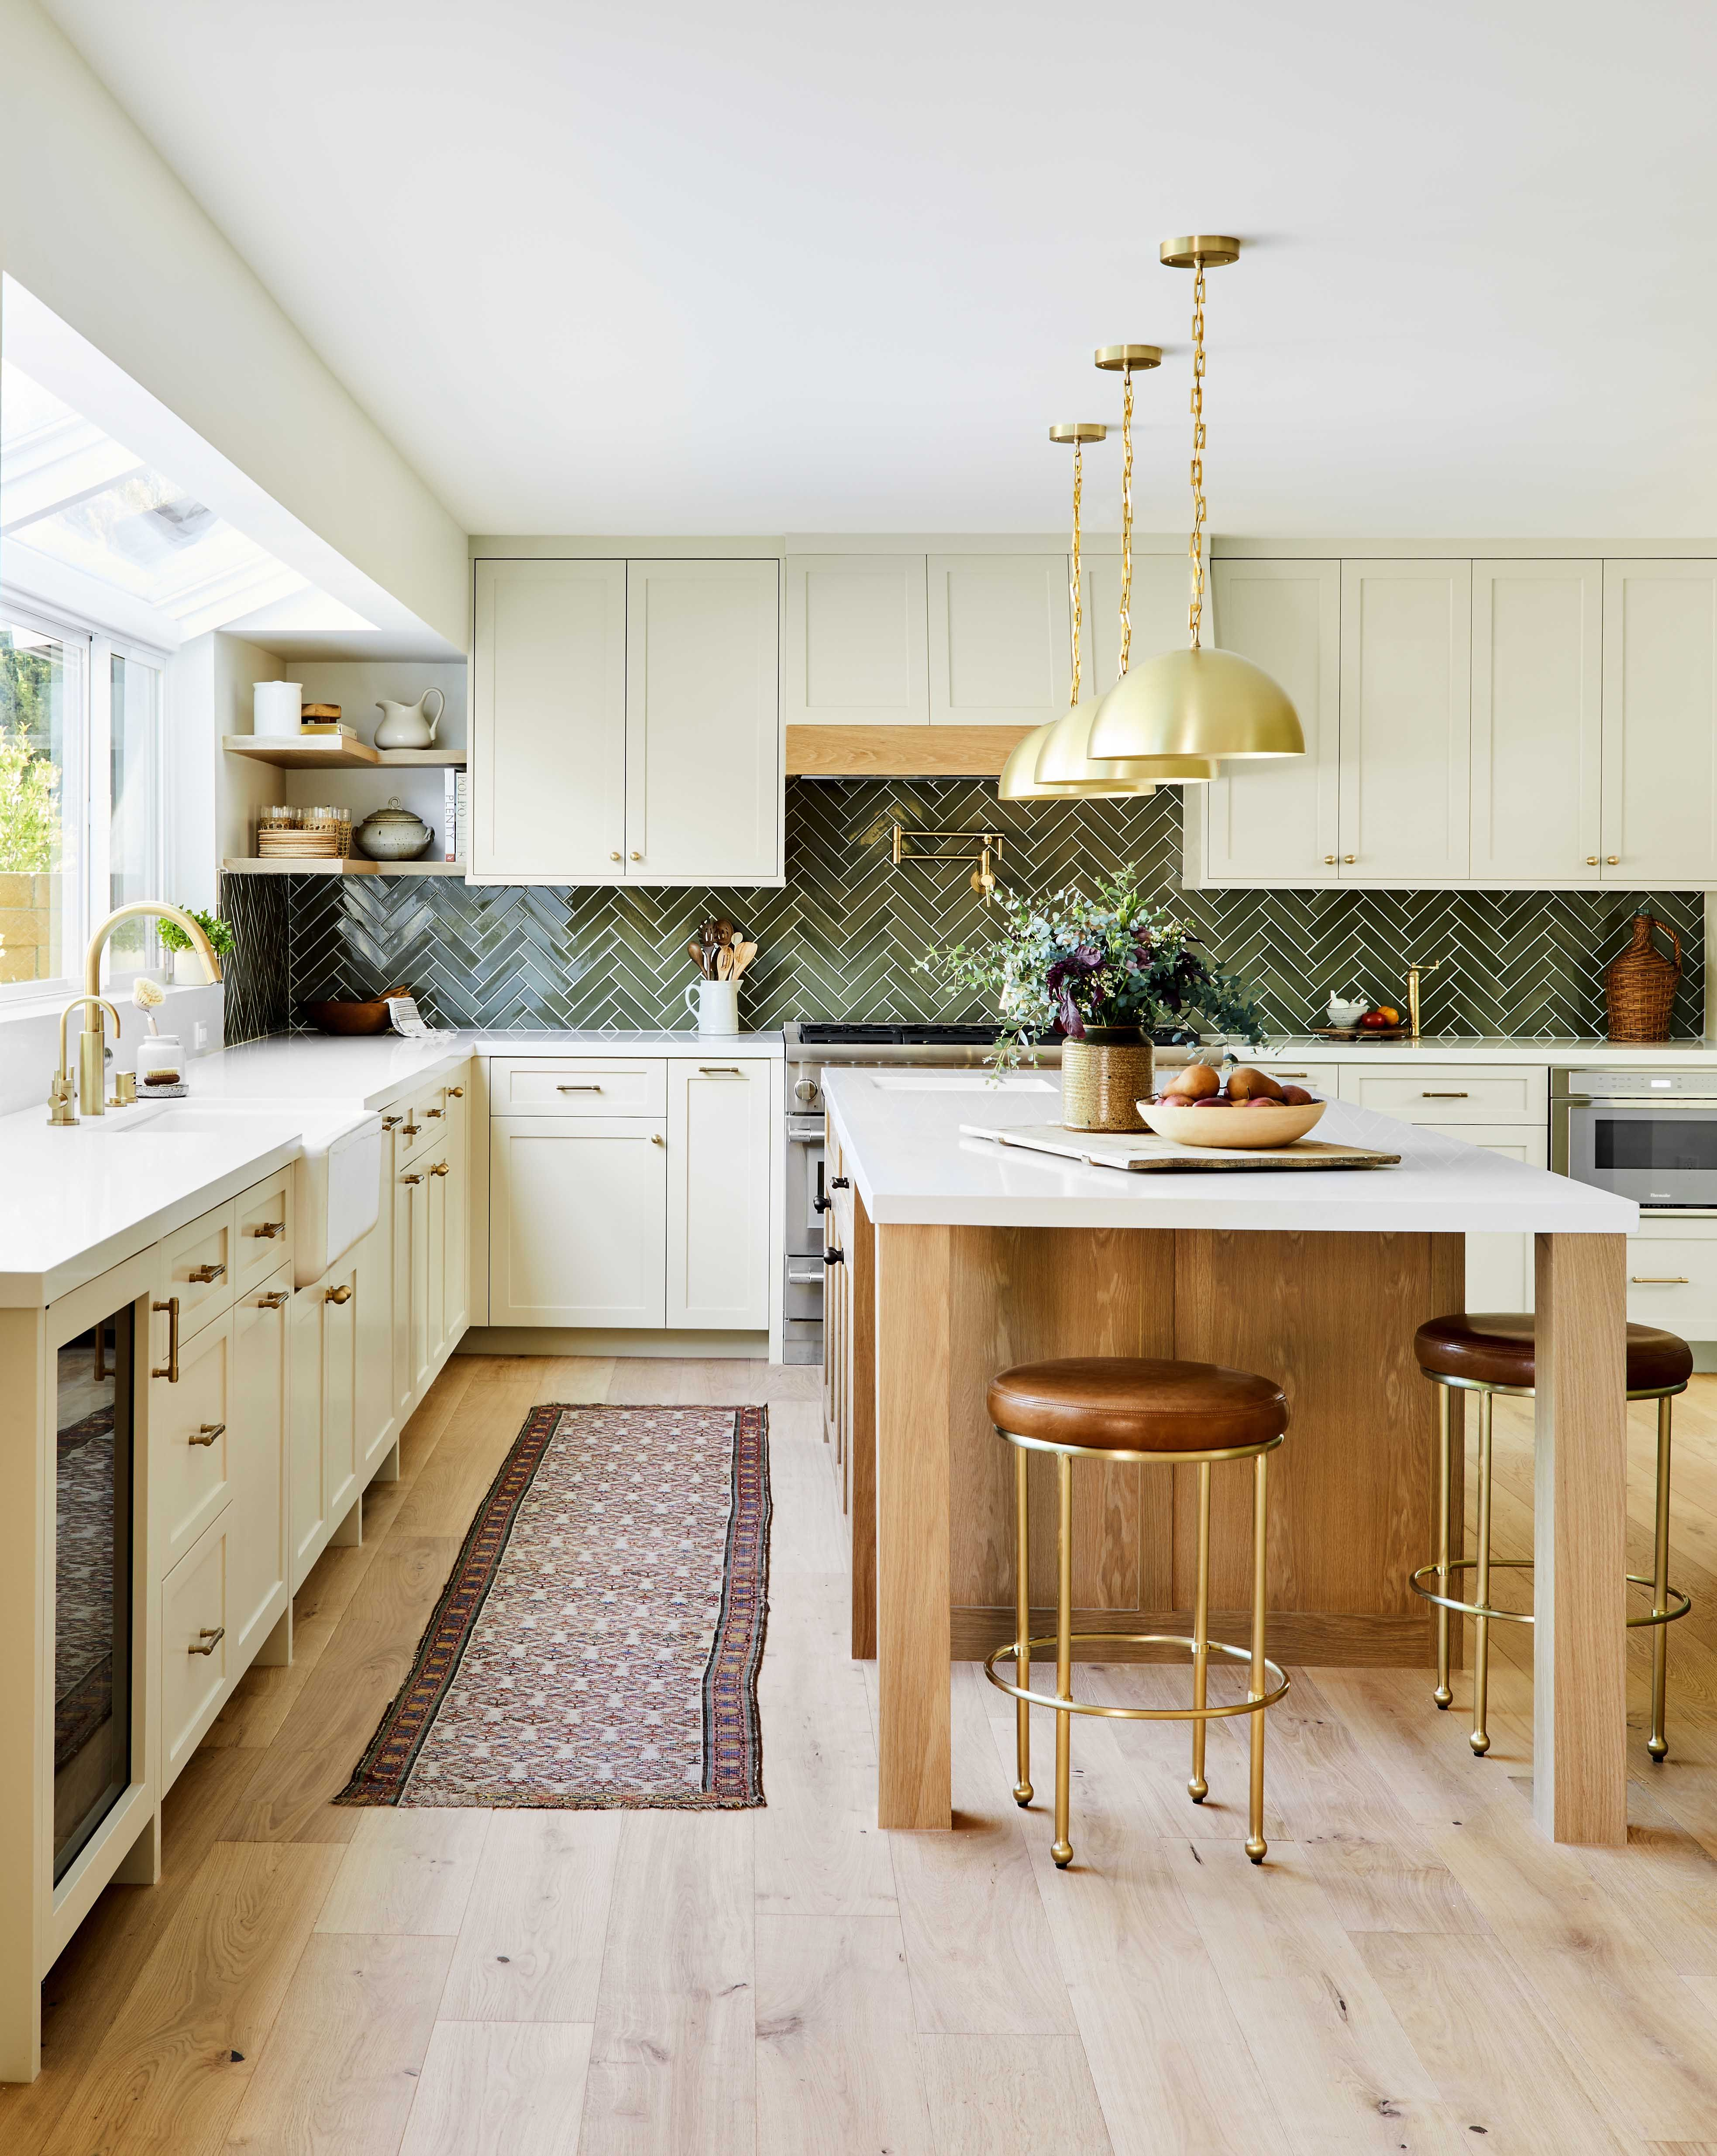 This Nature-Inspired California Kitchen Is Both Elegant and Down-to-Earth